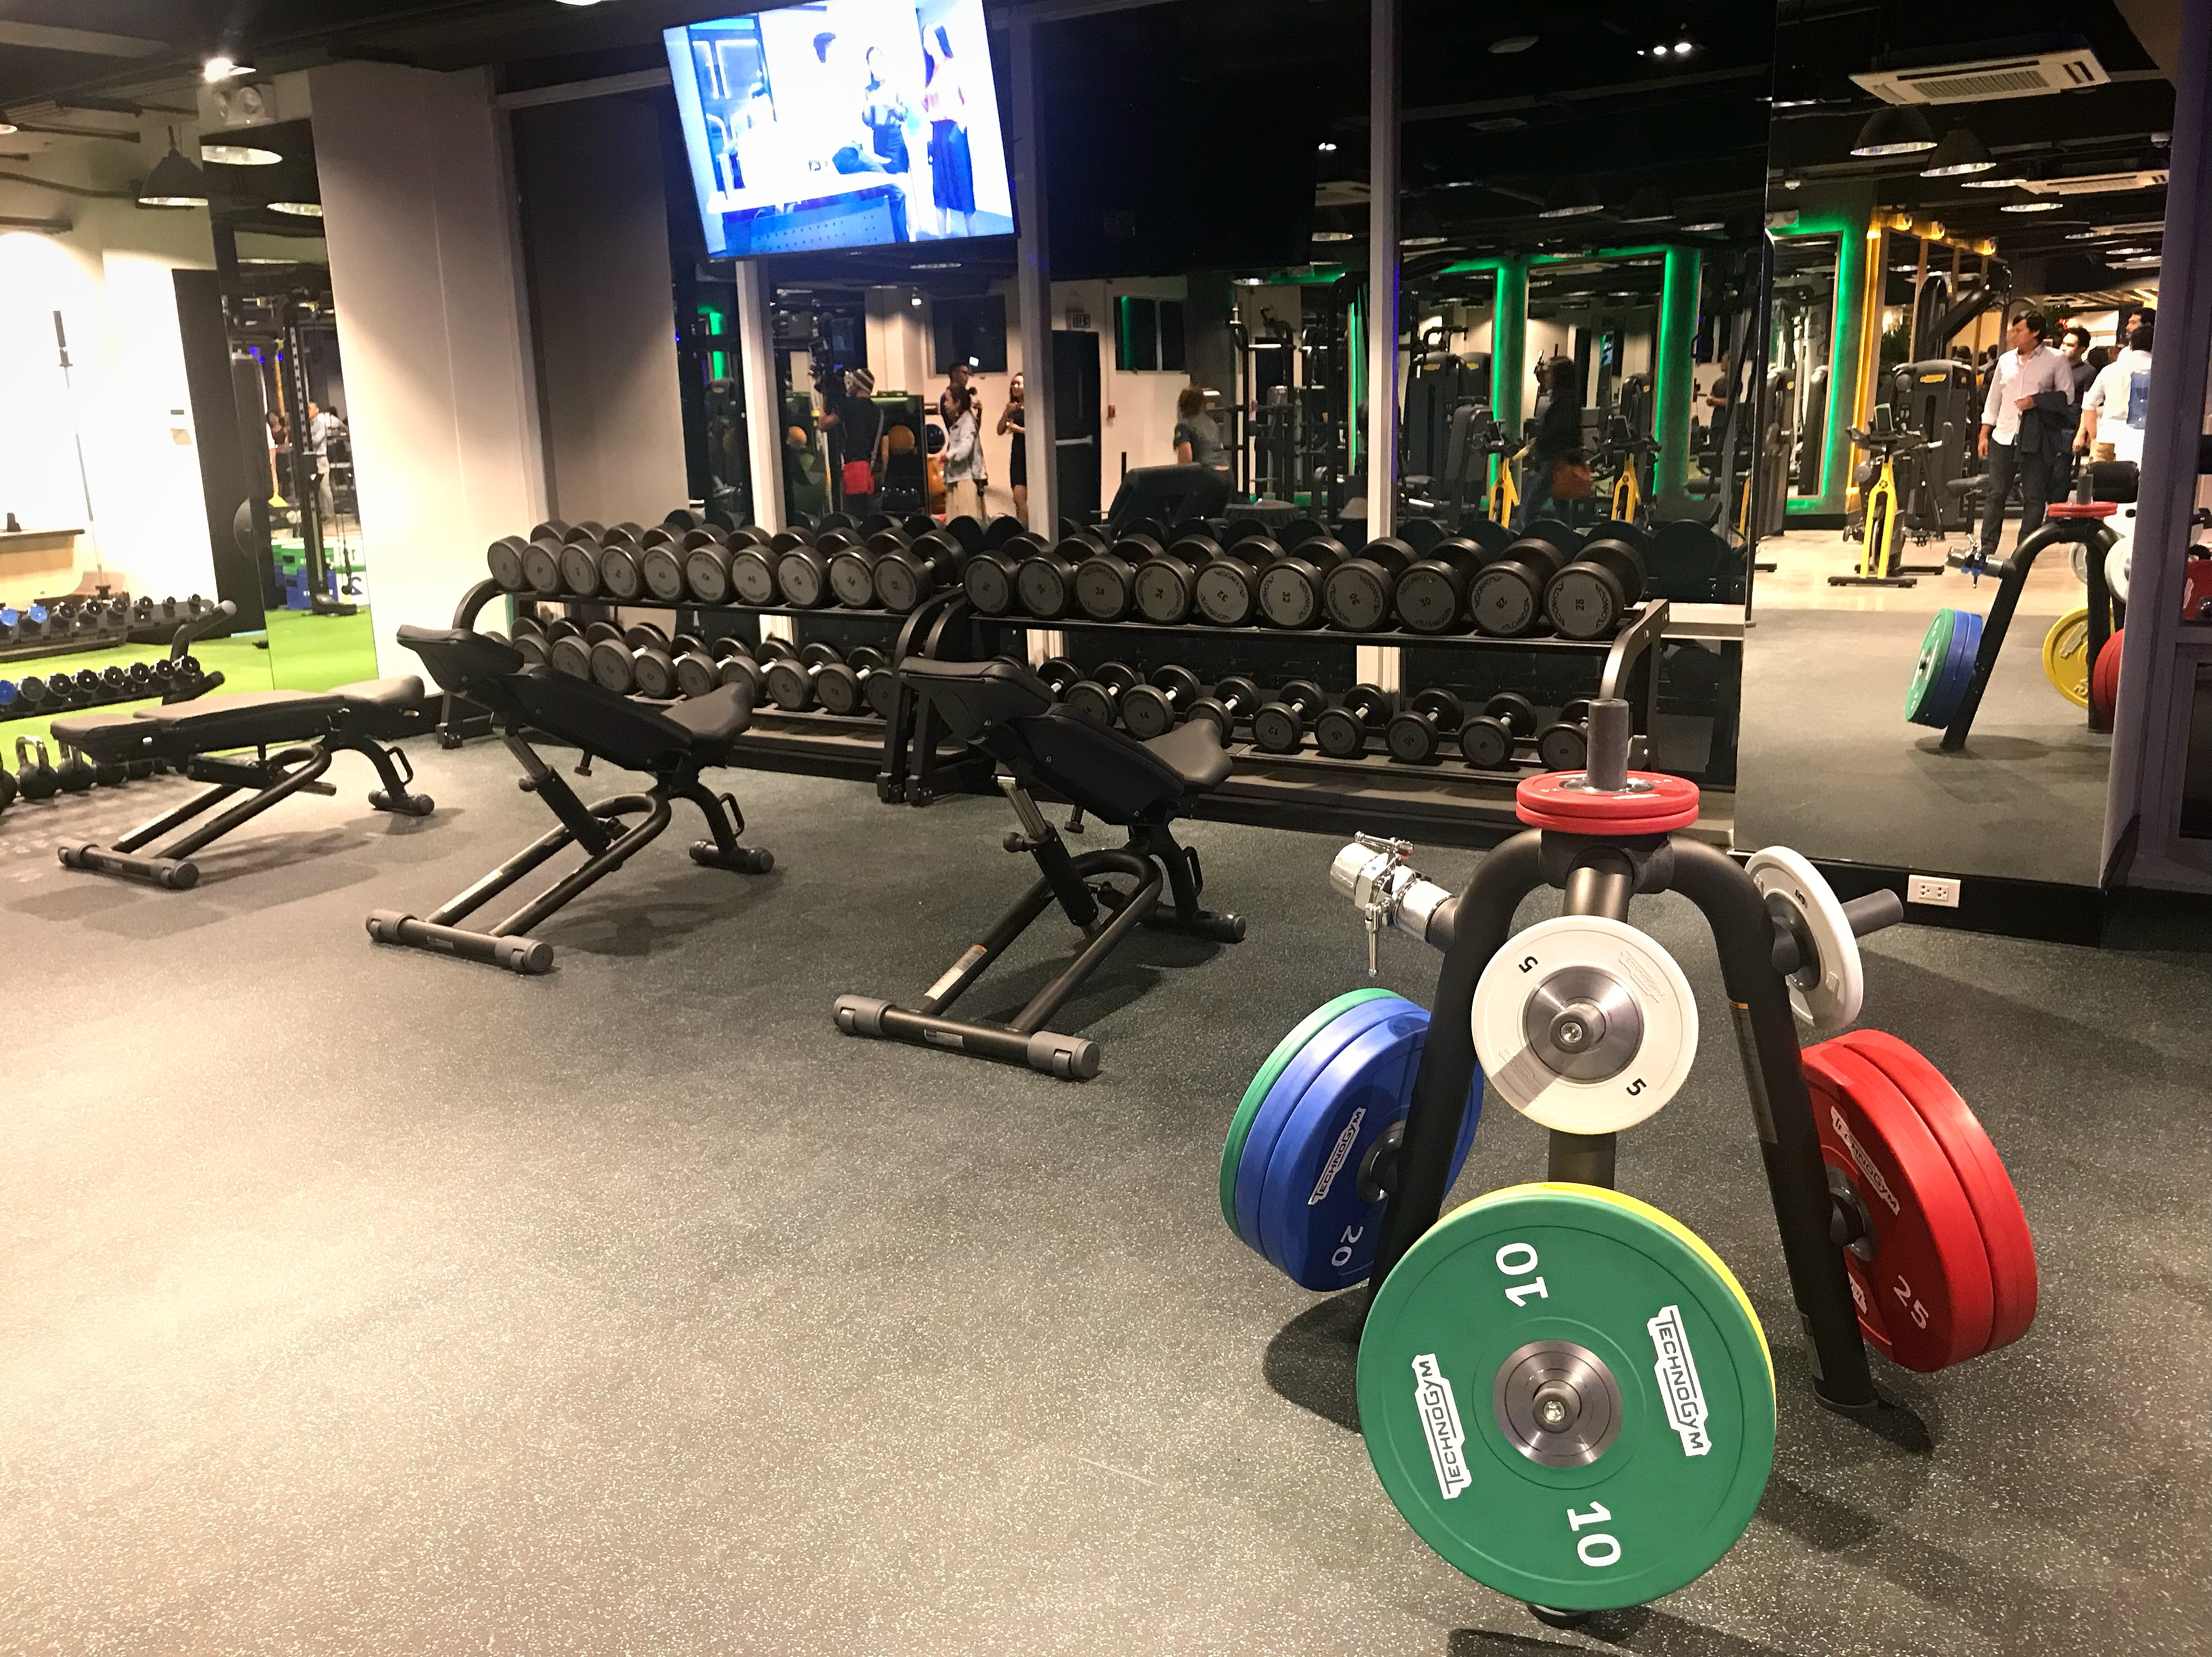 Weights area to pump up those muscles!